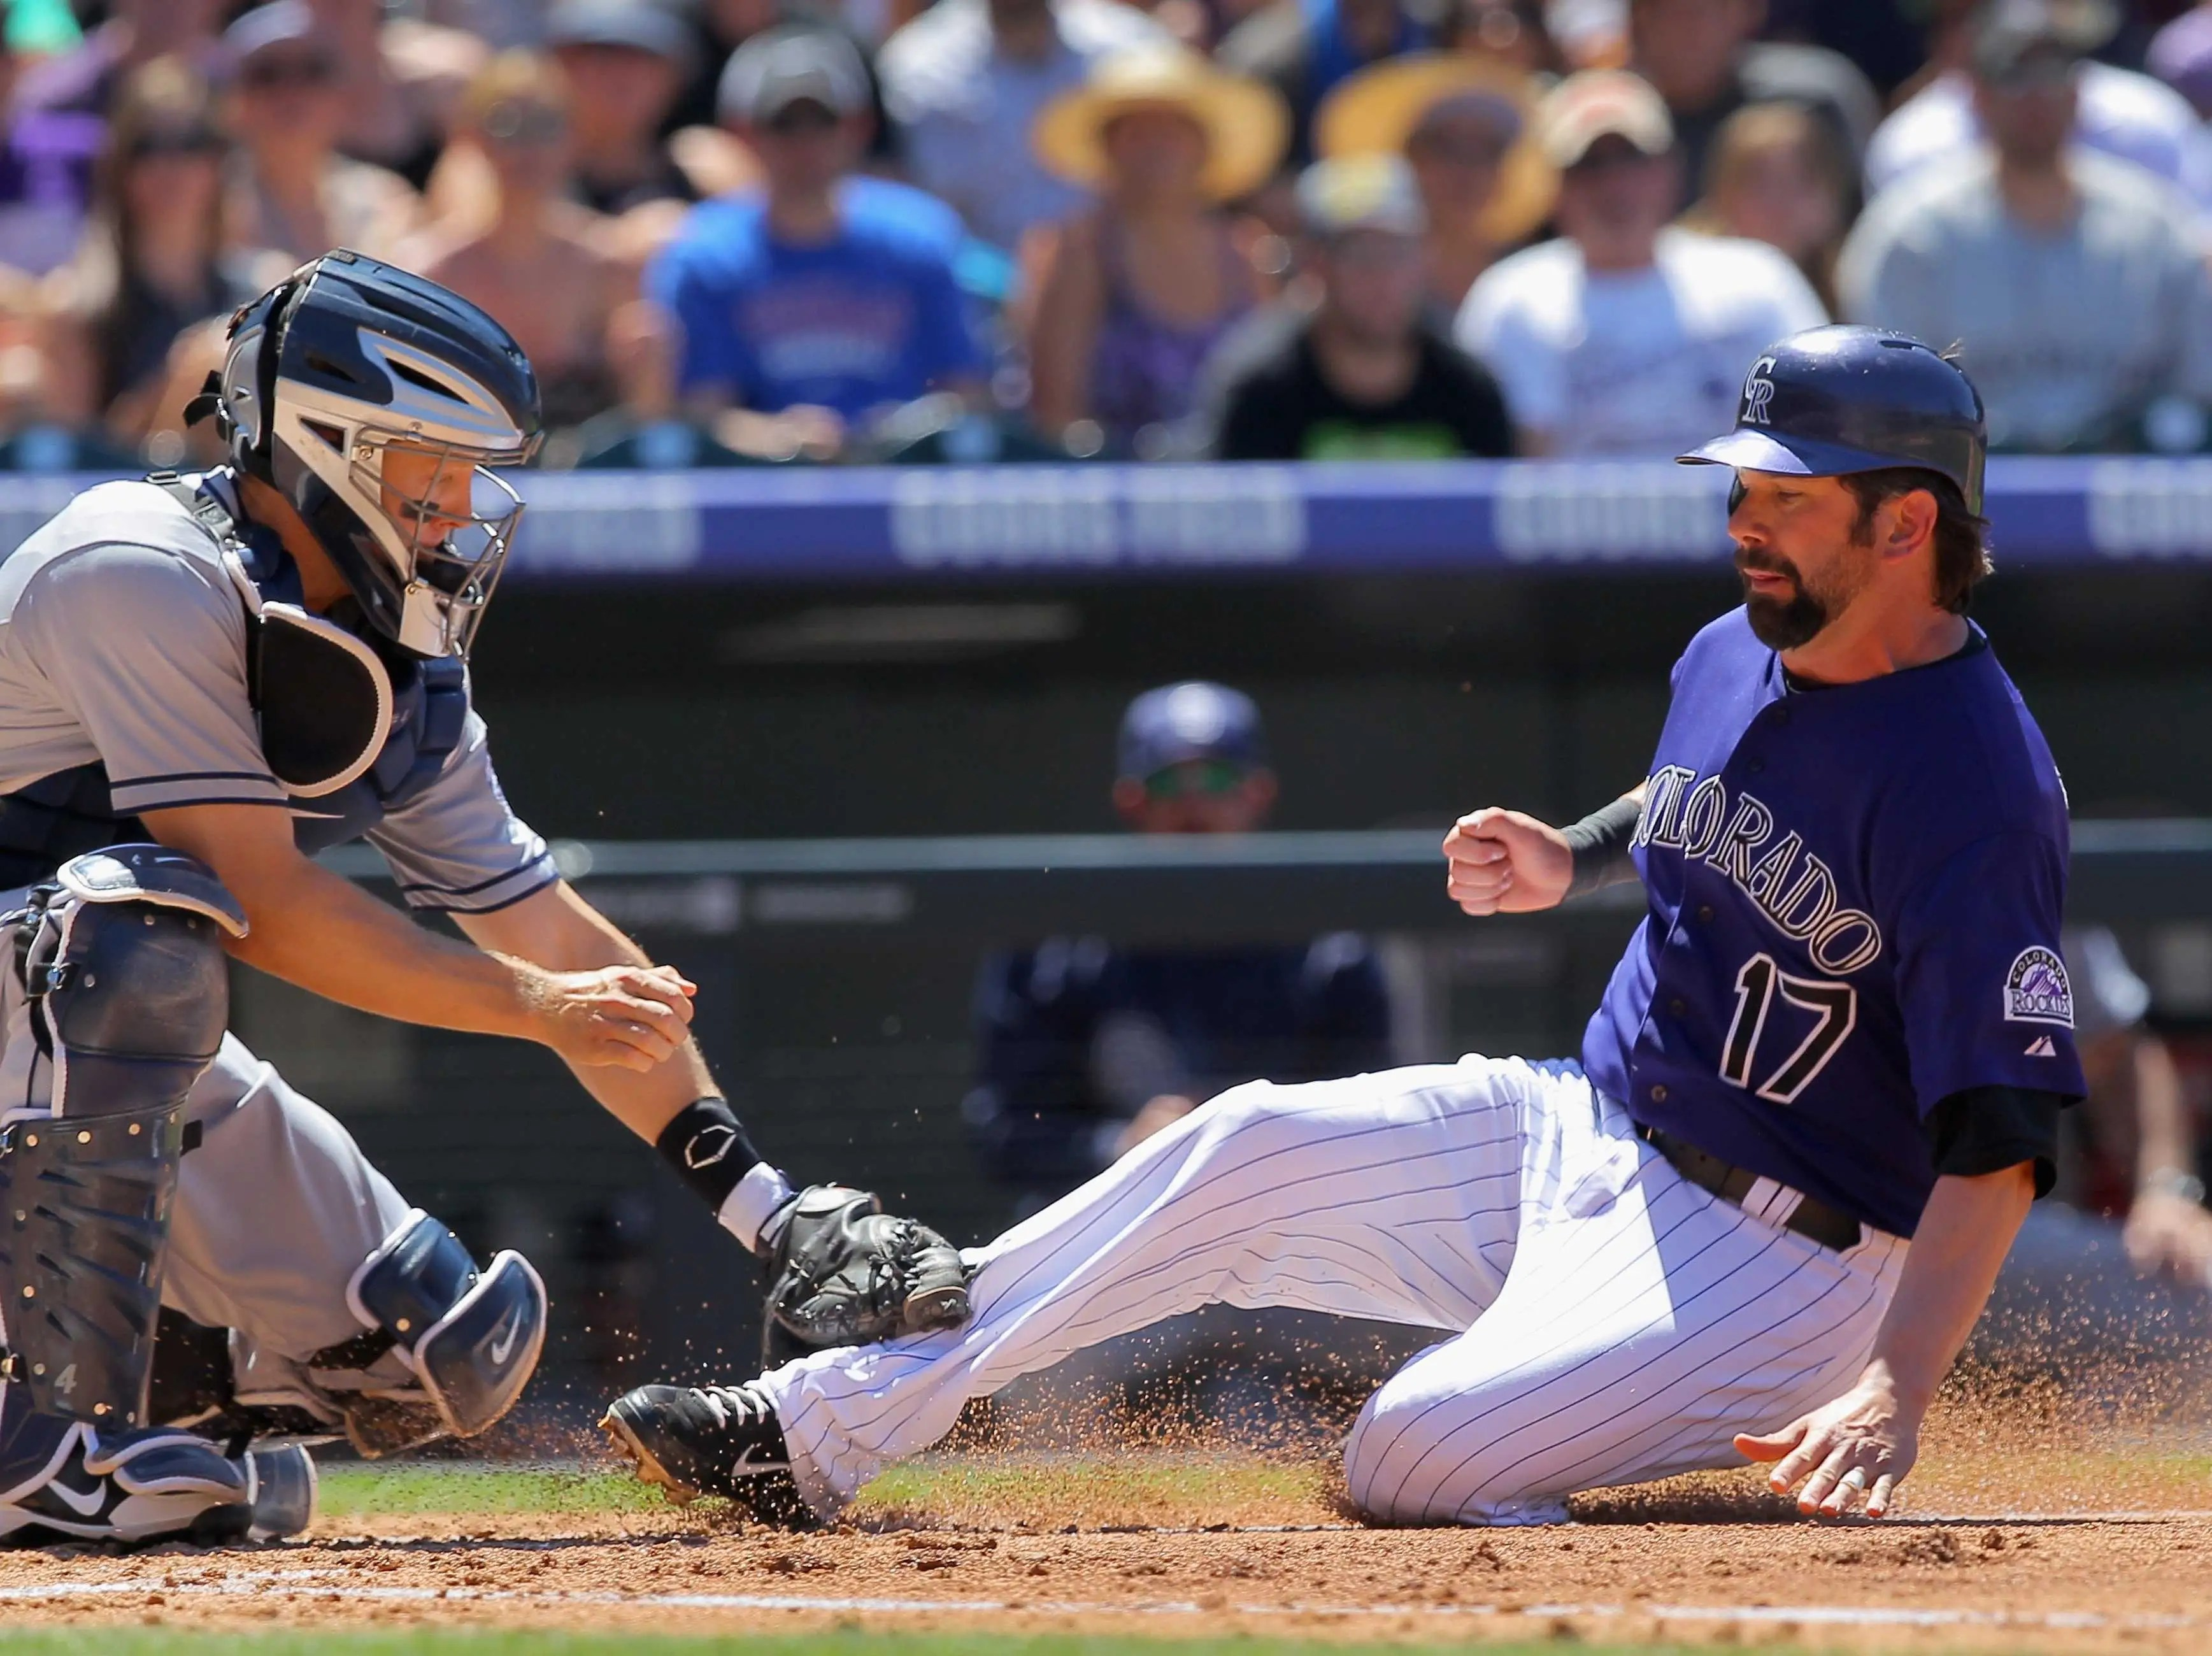 #21 Todd Helton, Colorado Rockies